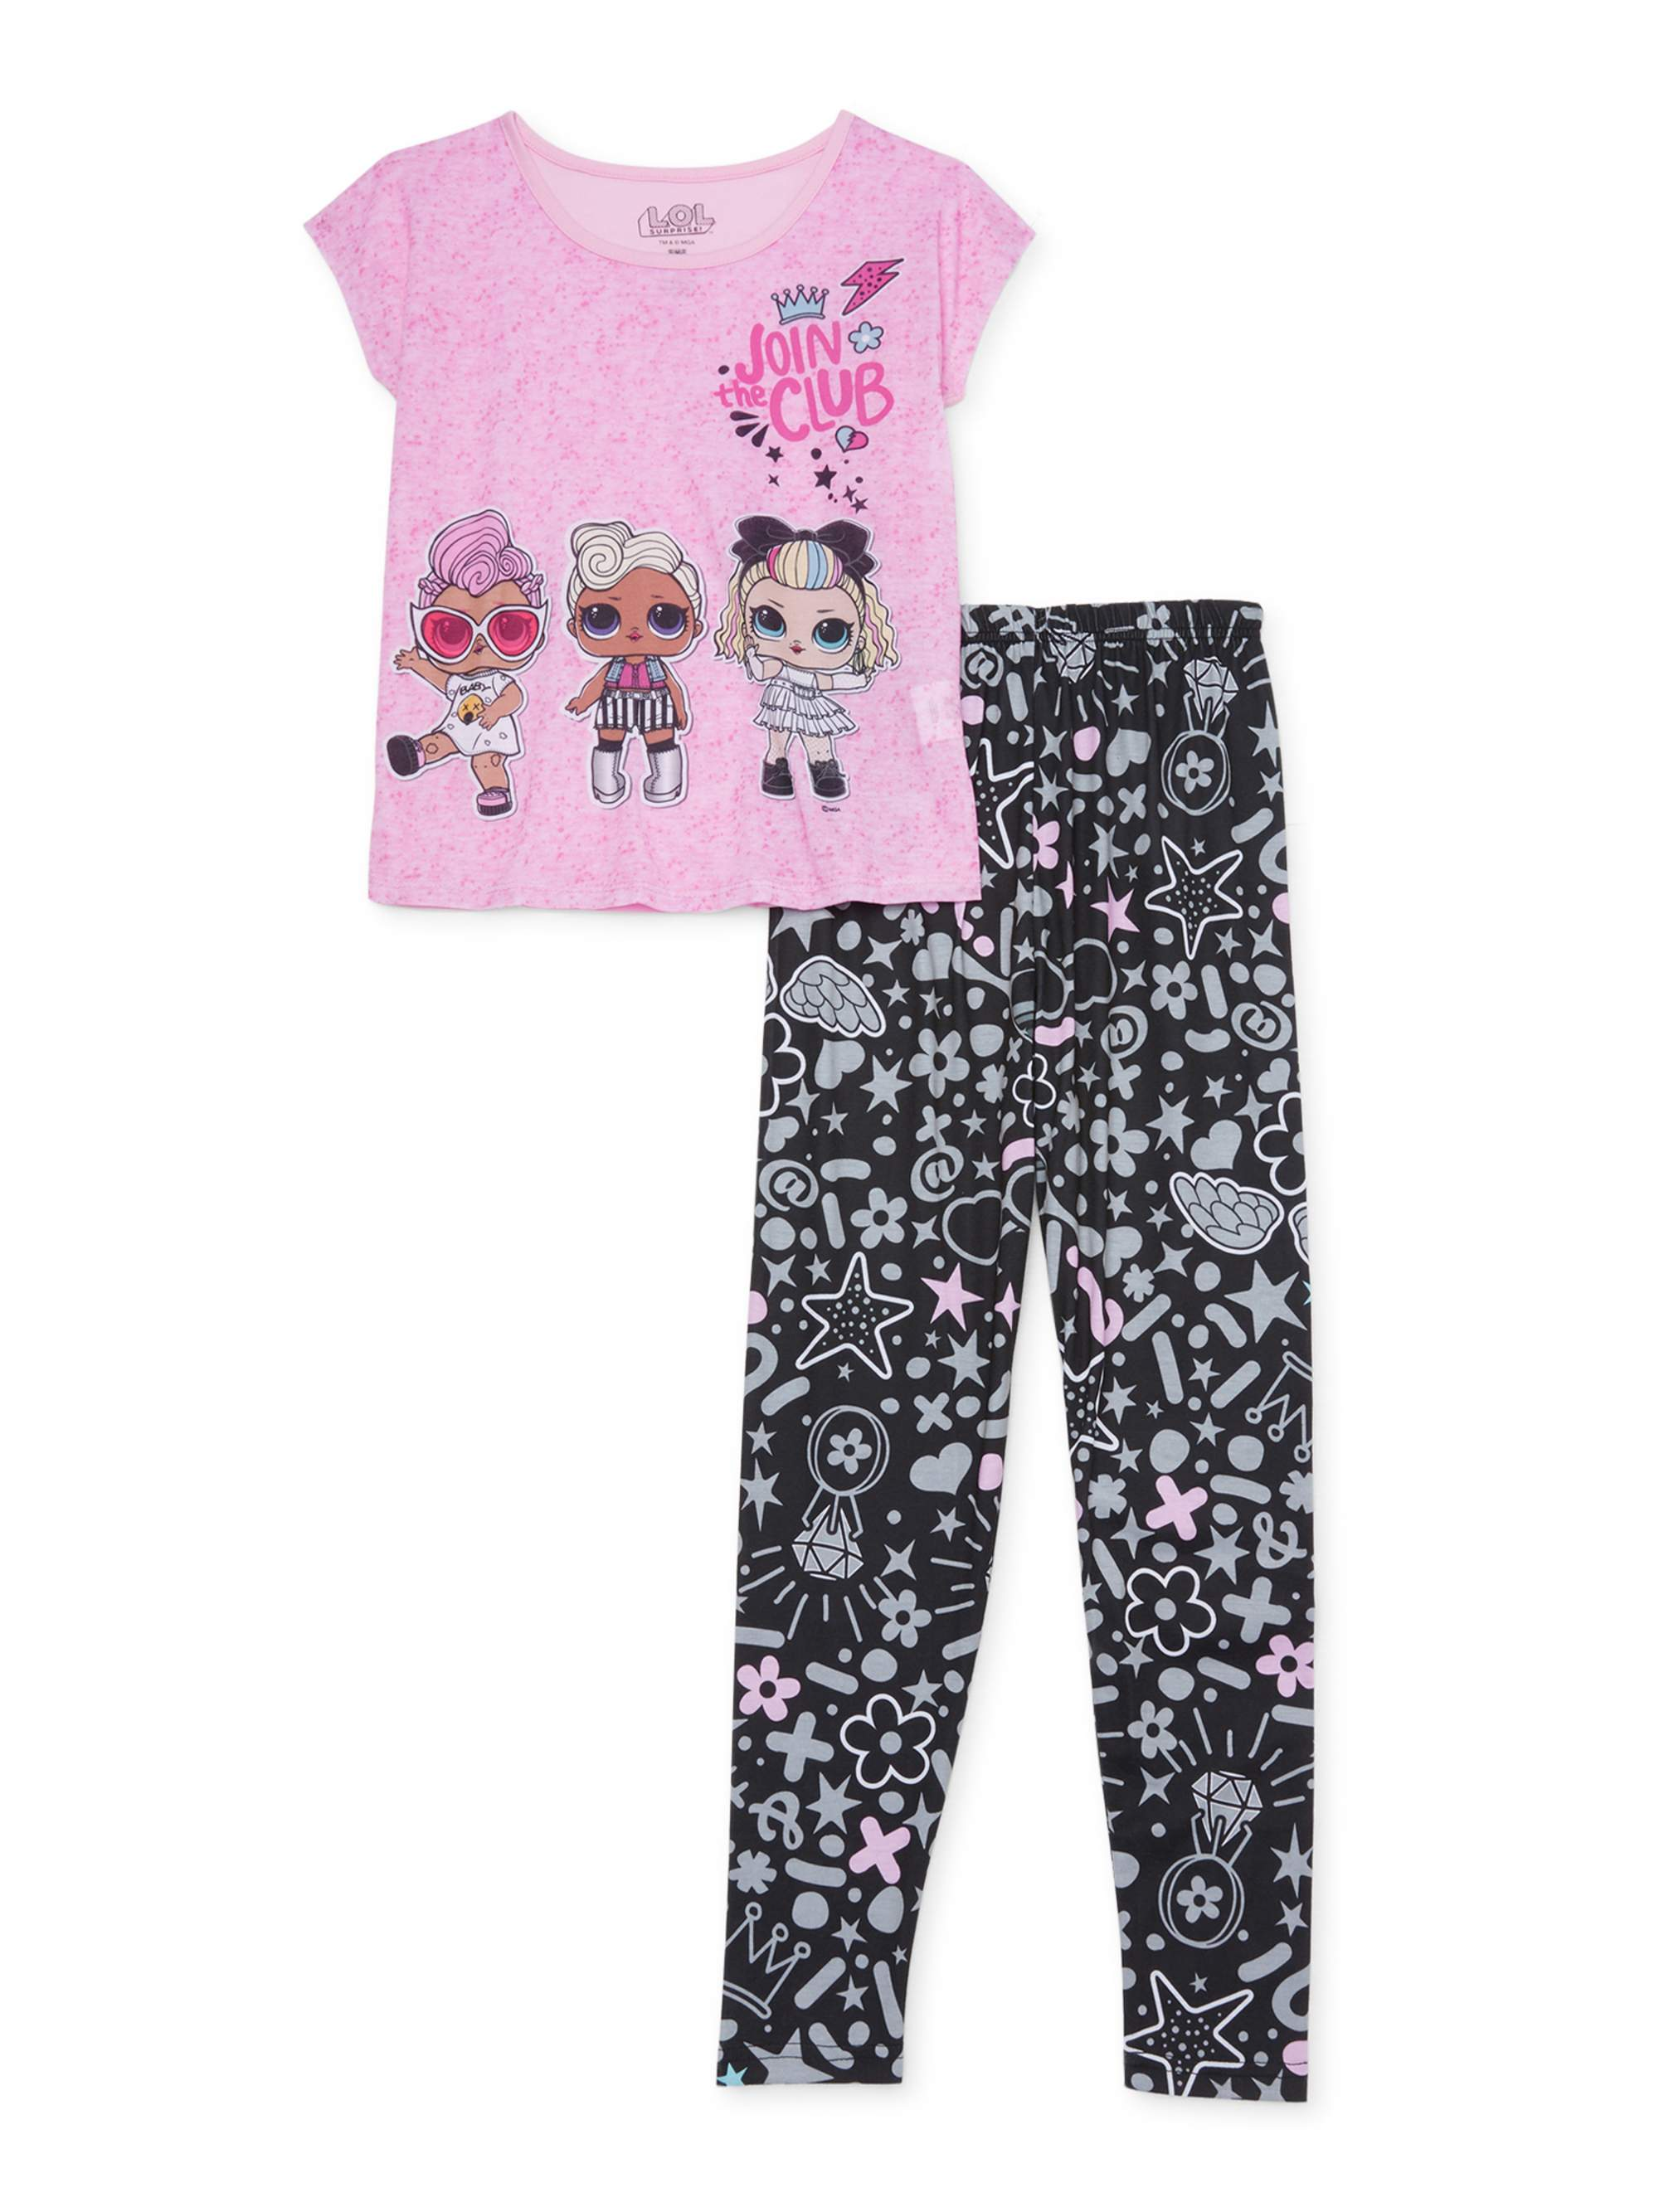 Dorm PJs with Slippers Pajama Set Rocker Diva and MC Swag of LOL Surprise,Girls Pajama Size 4//5 to 10//12 L.O.L Surprise